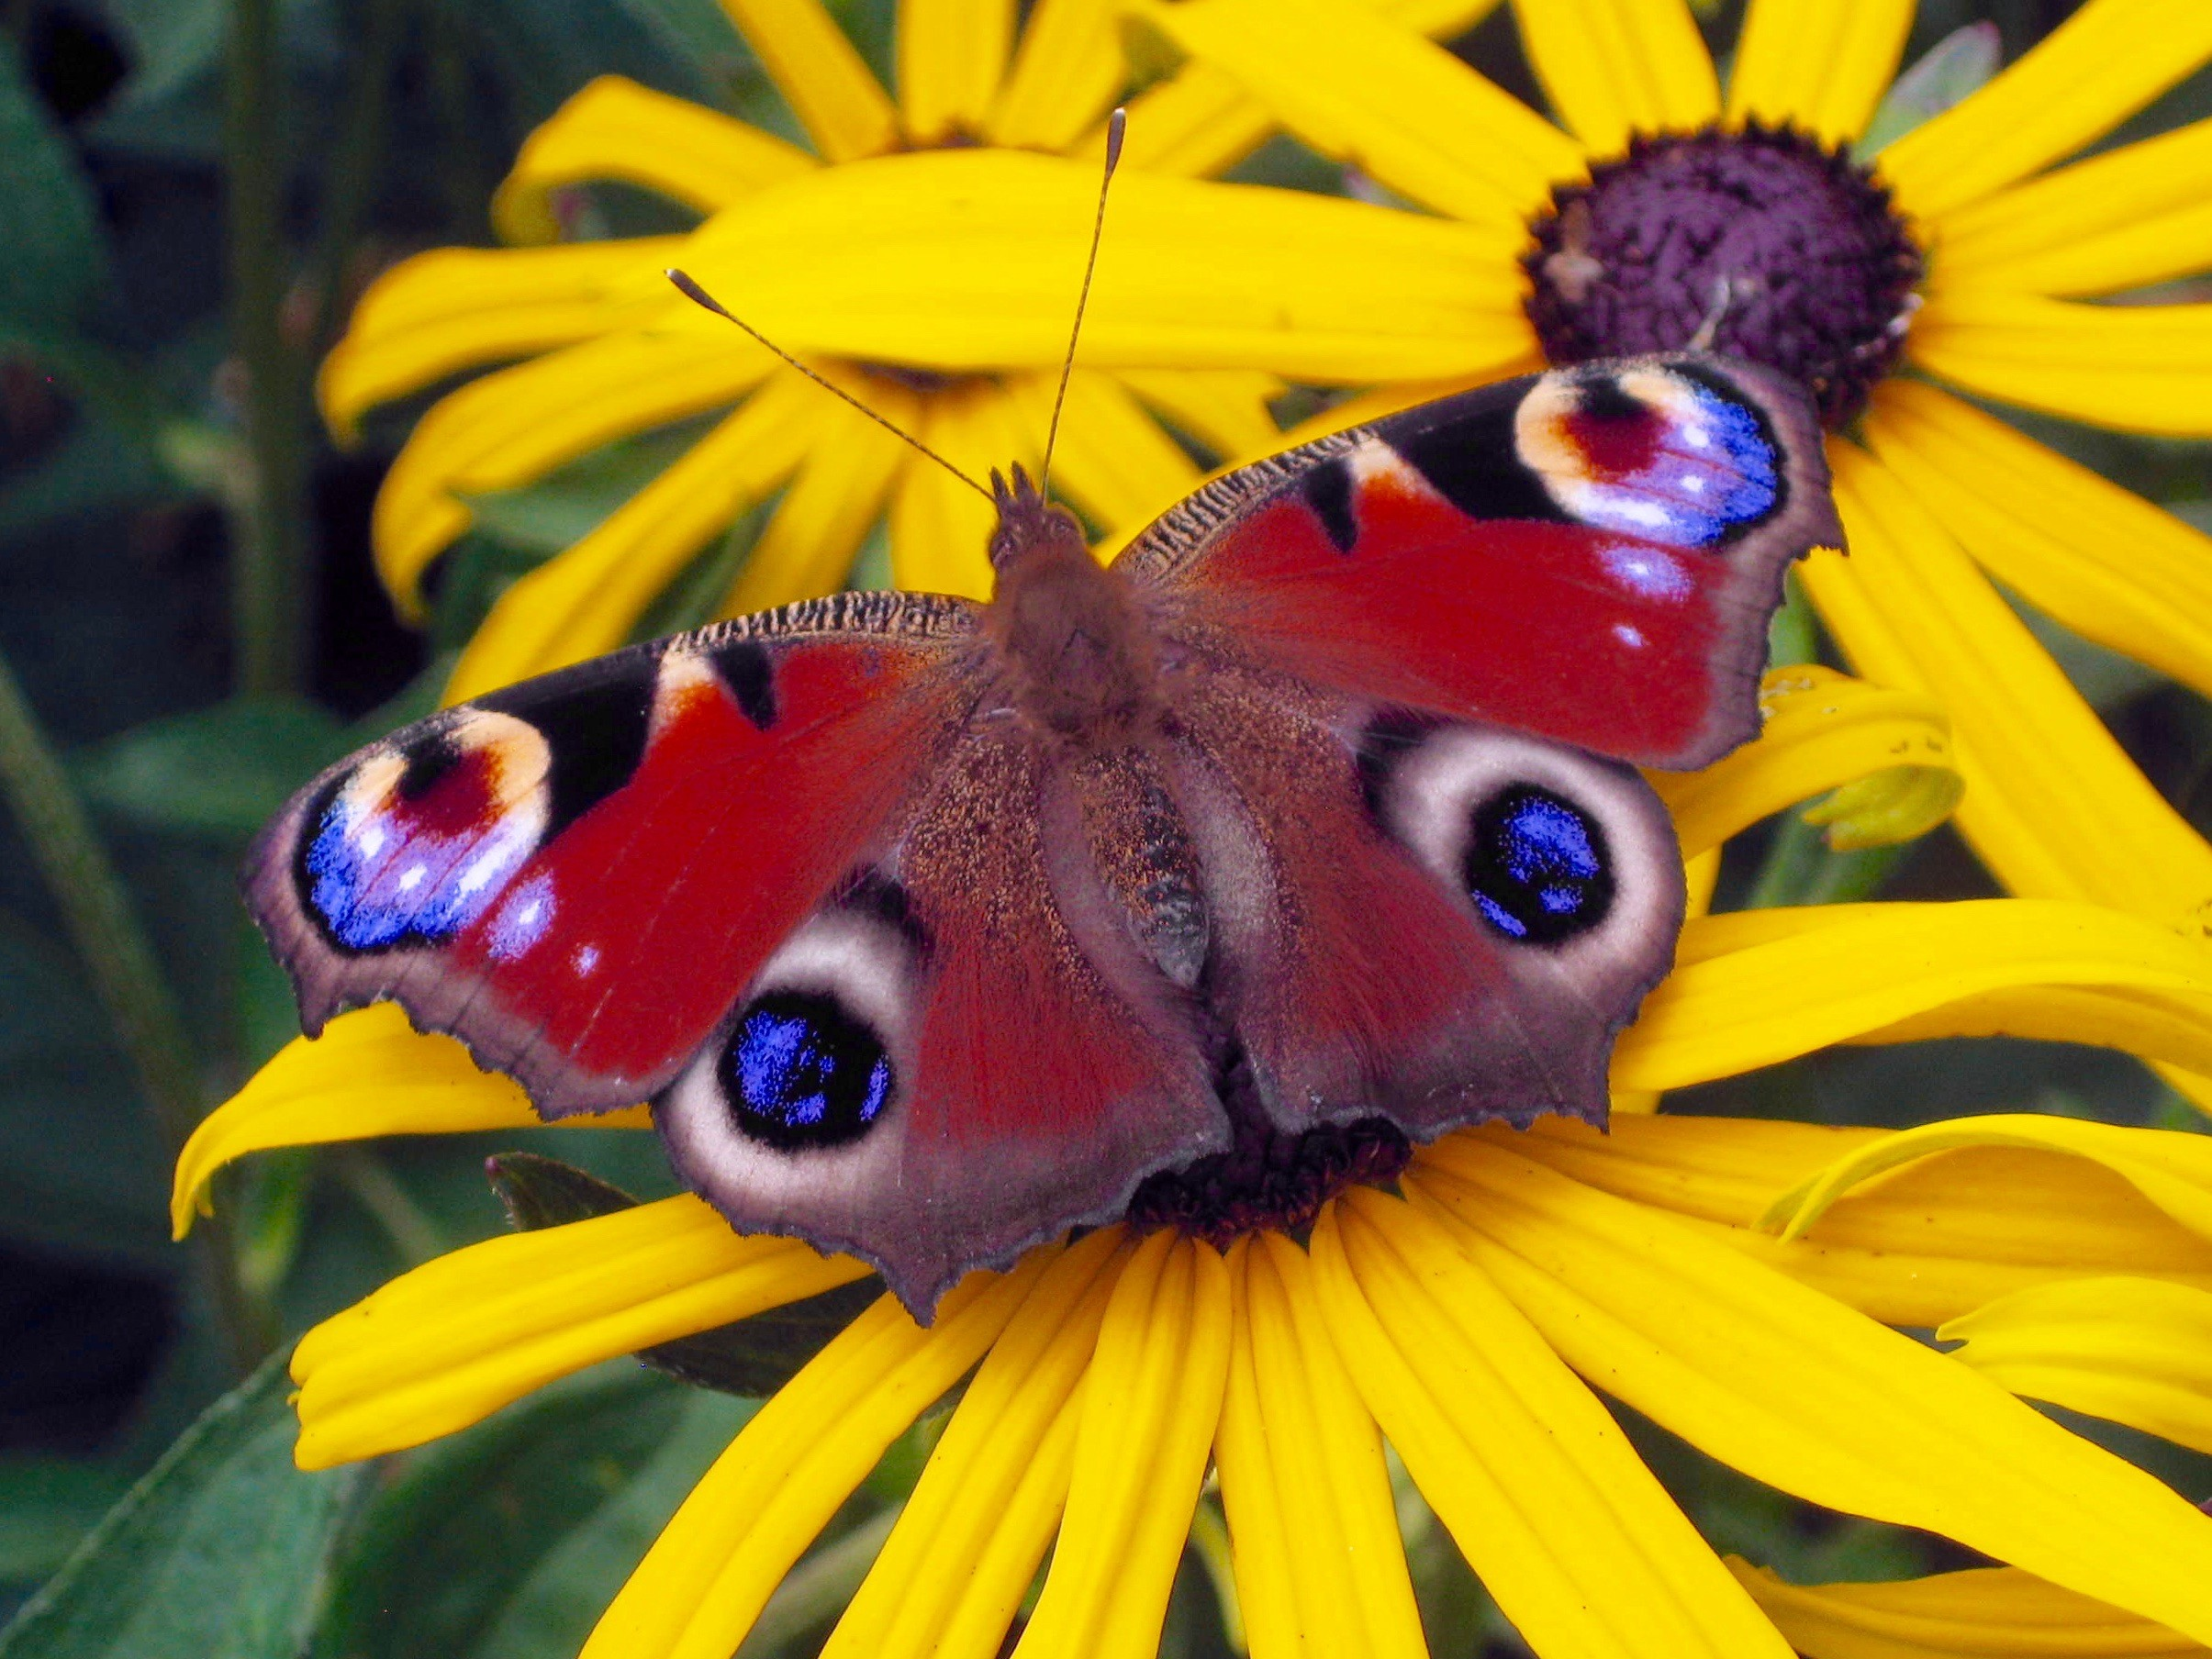 Red and purple peacock butterfly